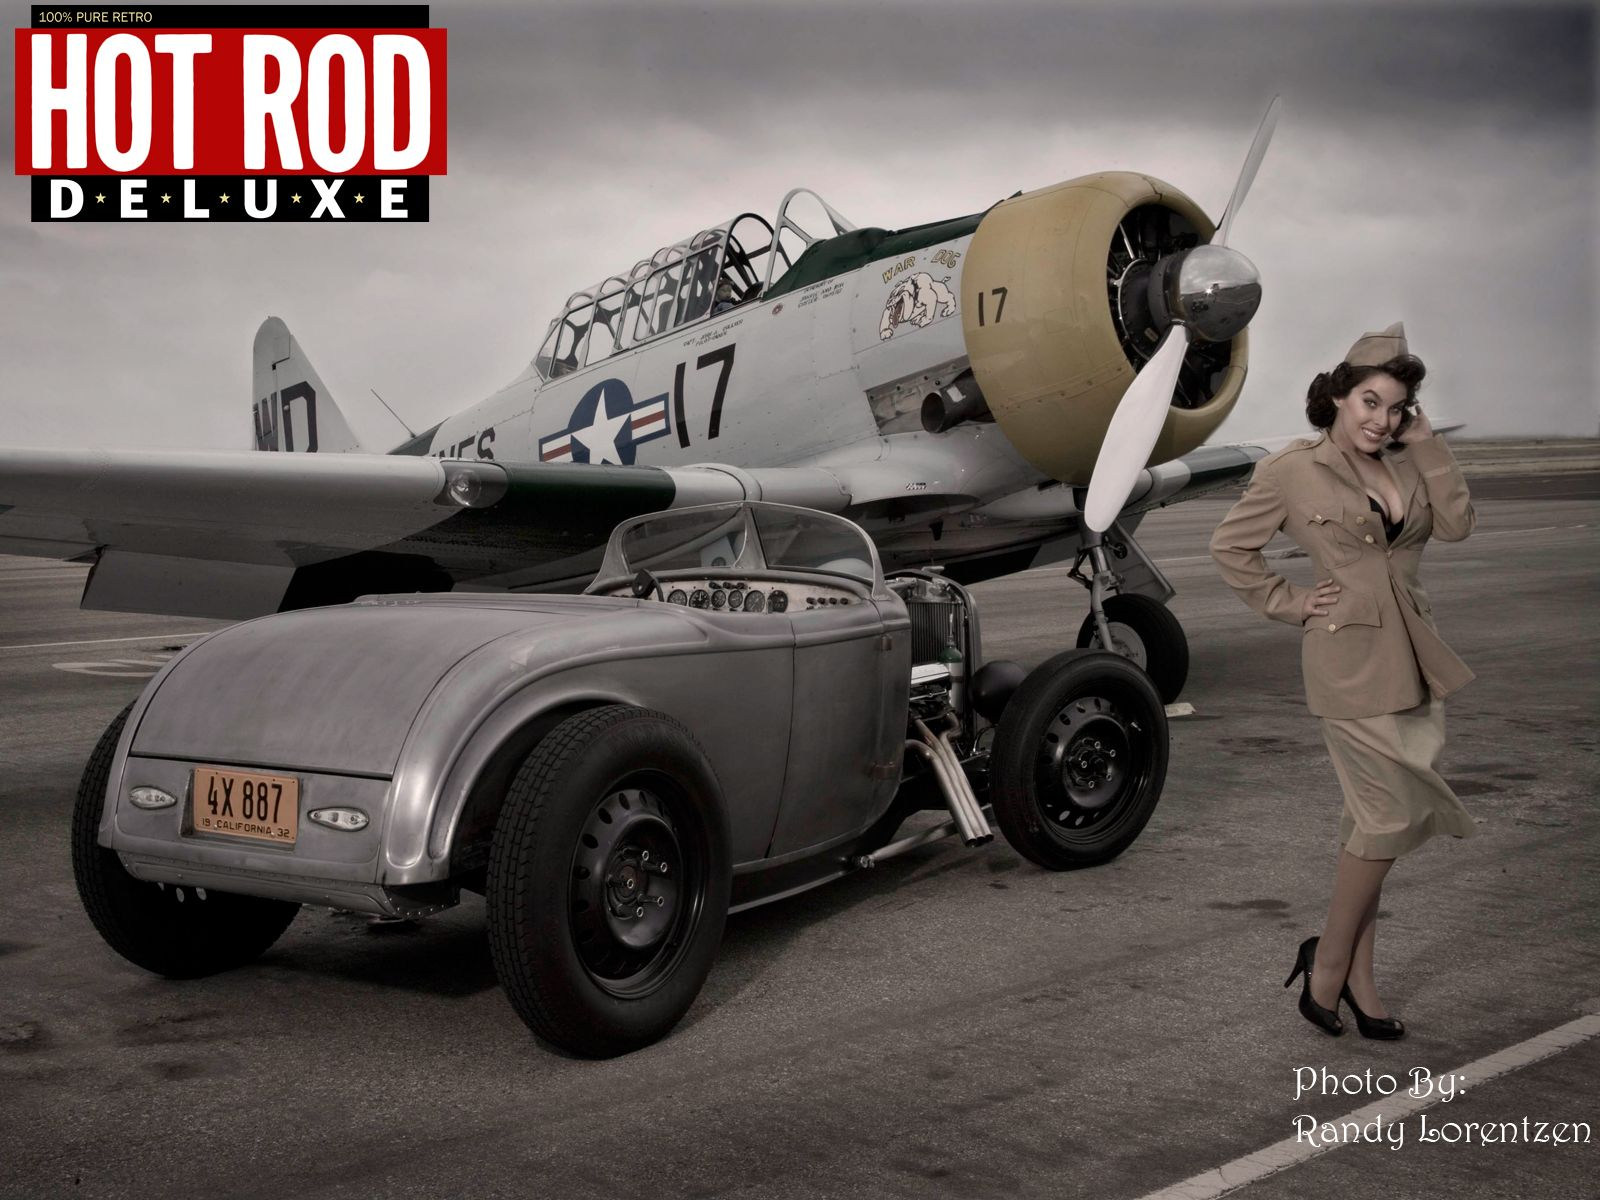 Hot rod wallpaper and background image 1600x1200 id 187495 - Muscle car girl wallpaper ...